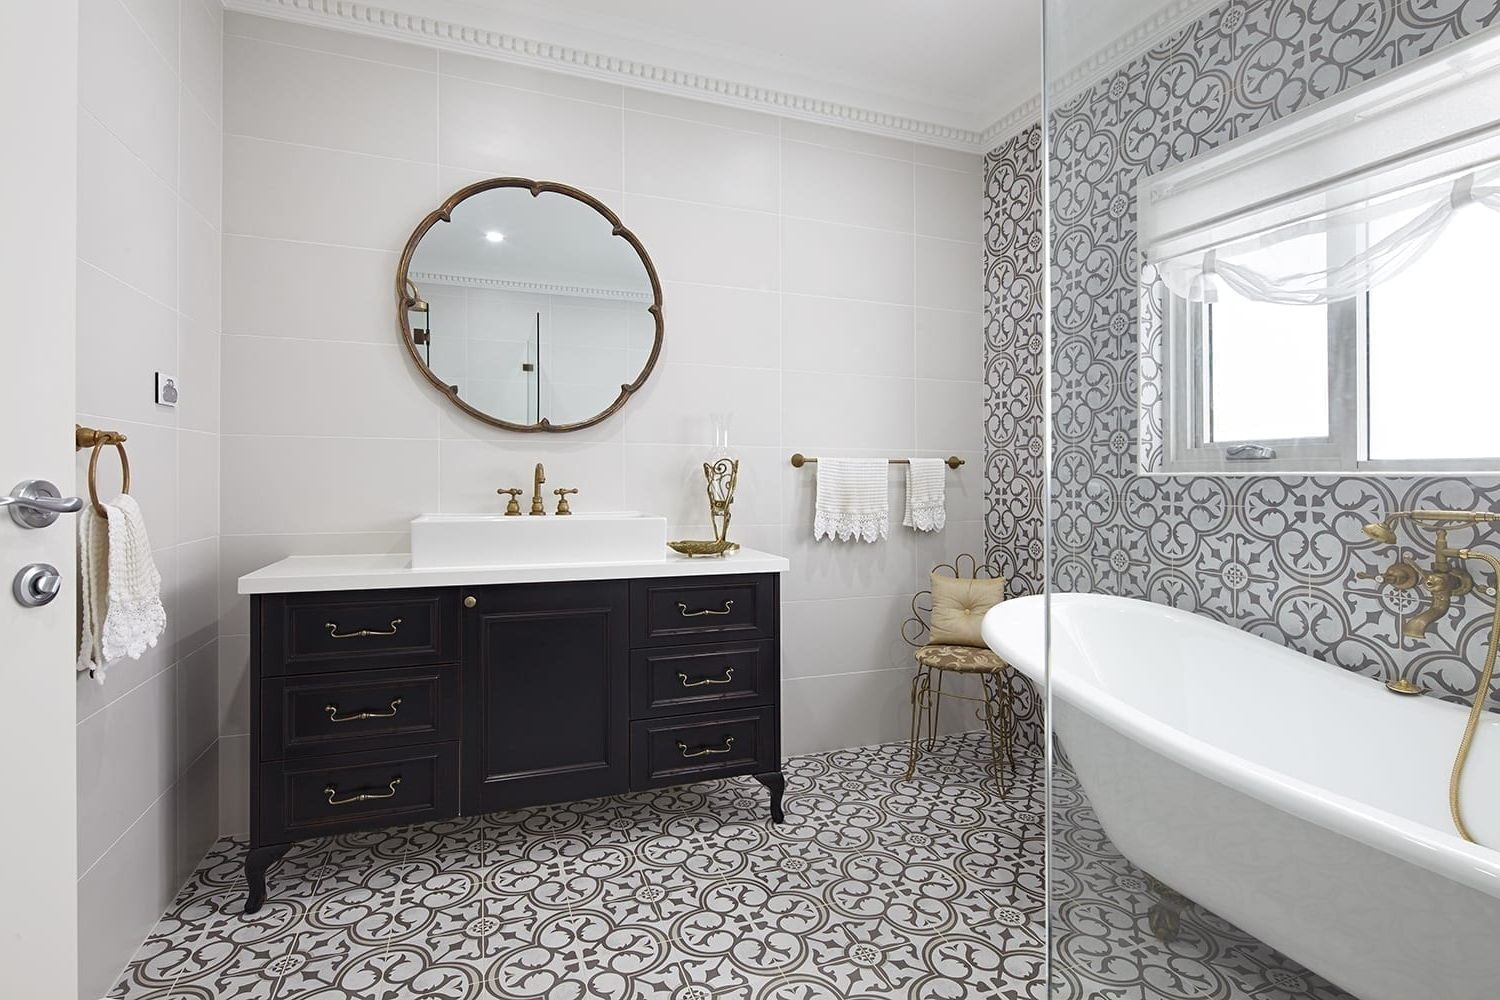 35+ French Provincial Bathroom Ideas And Designs 10+ French Provincial Bathroom Inspirations